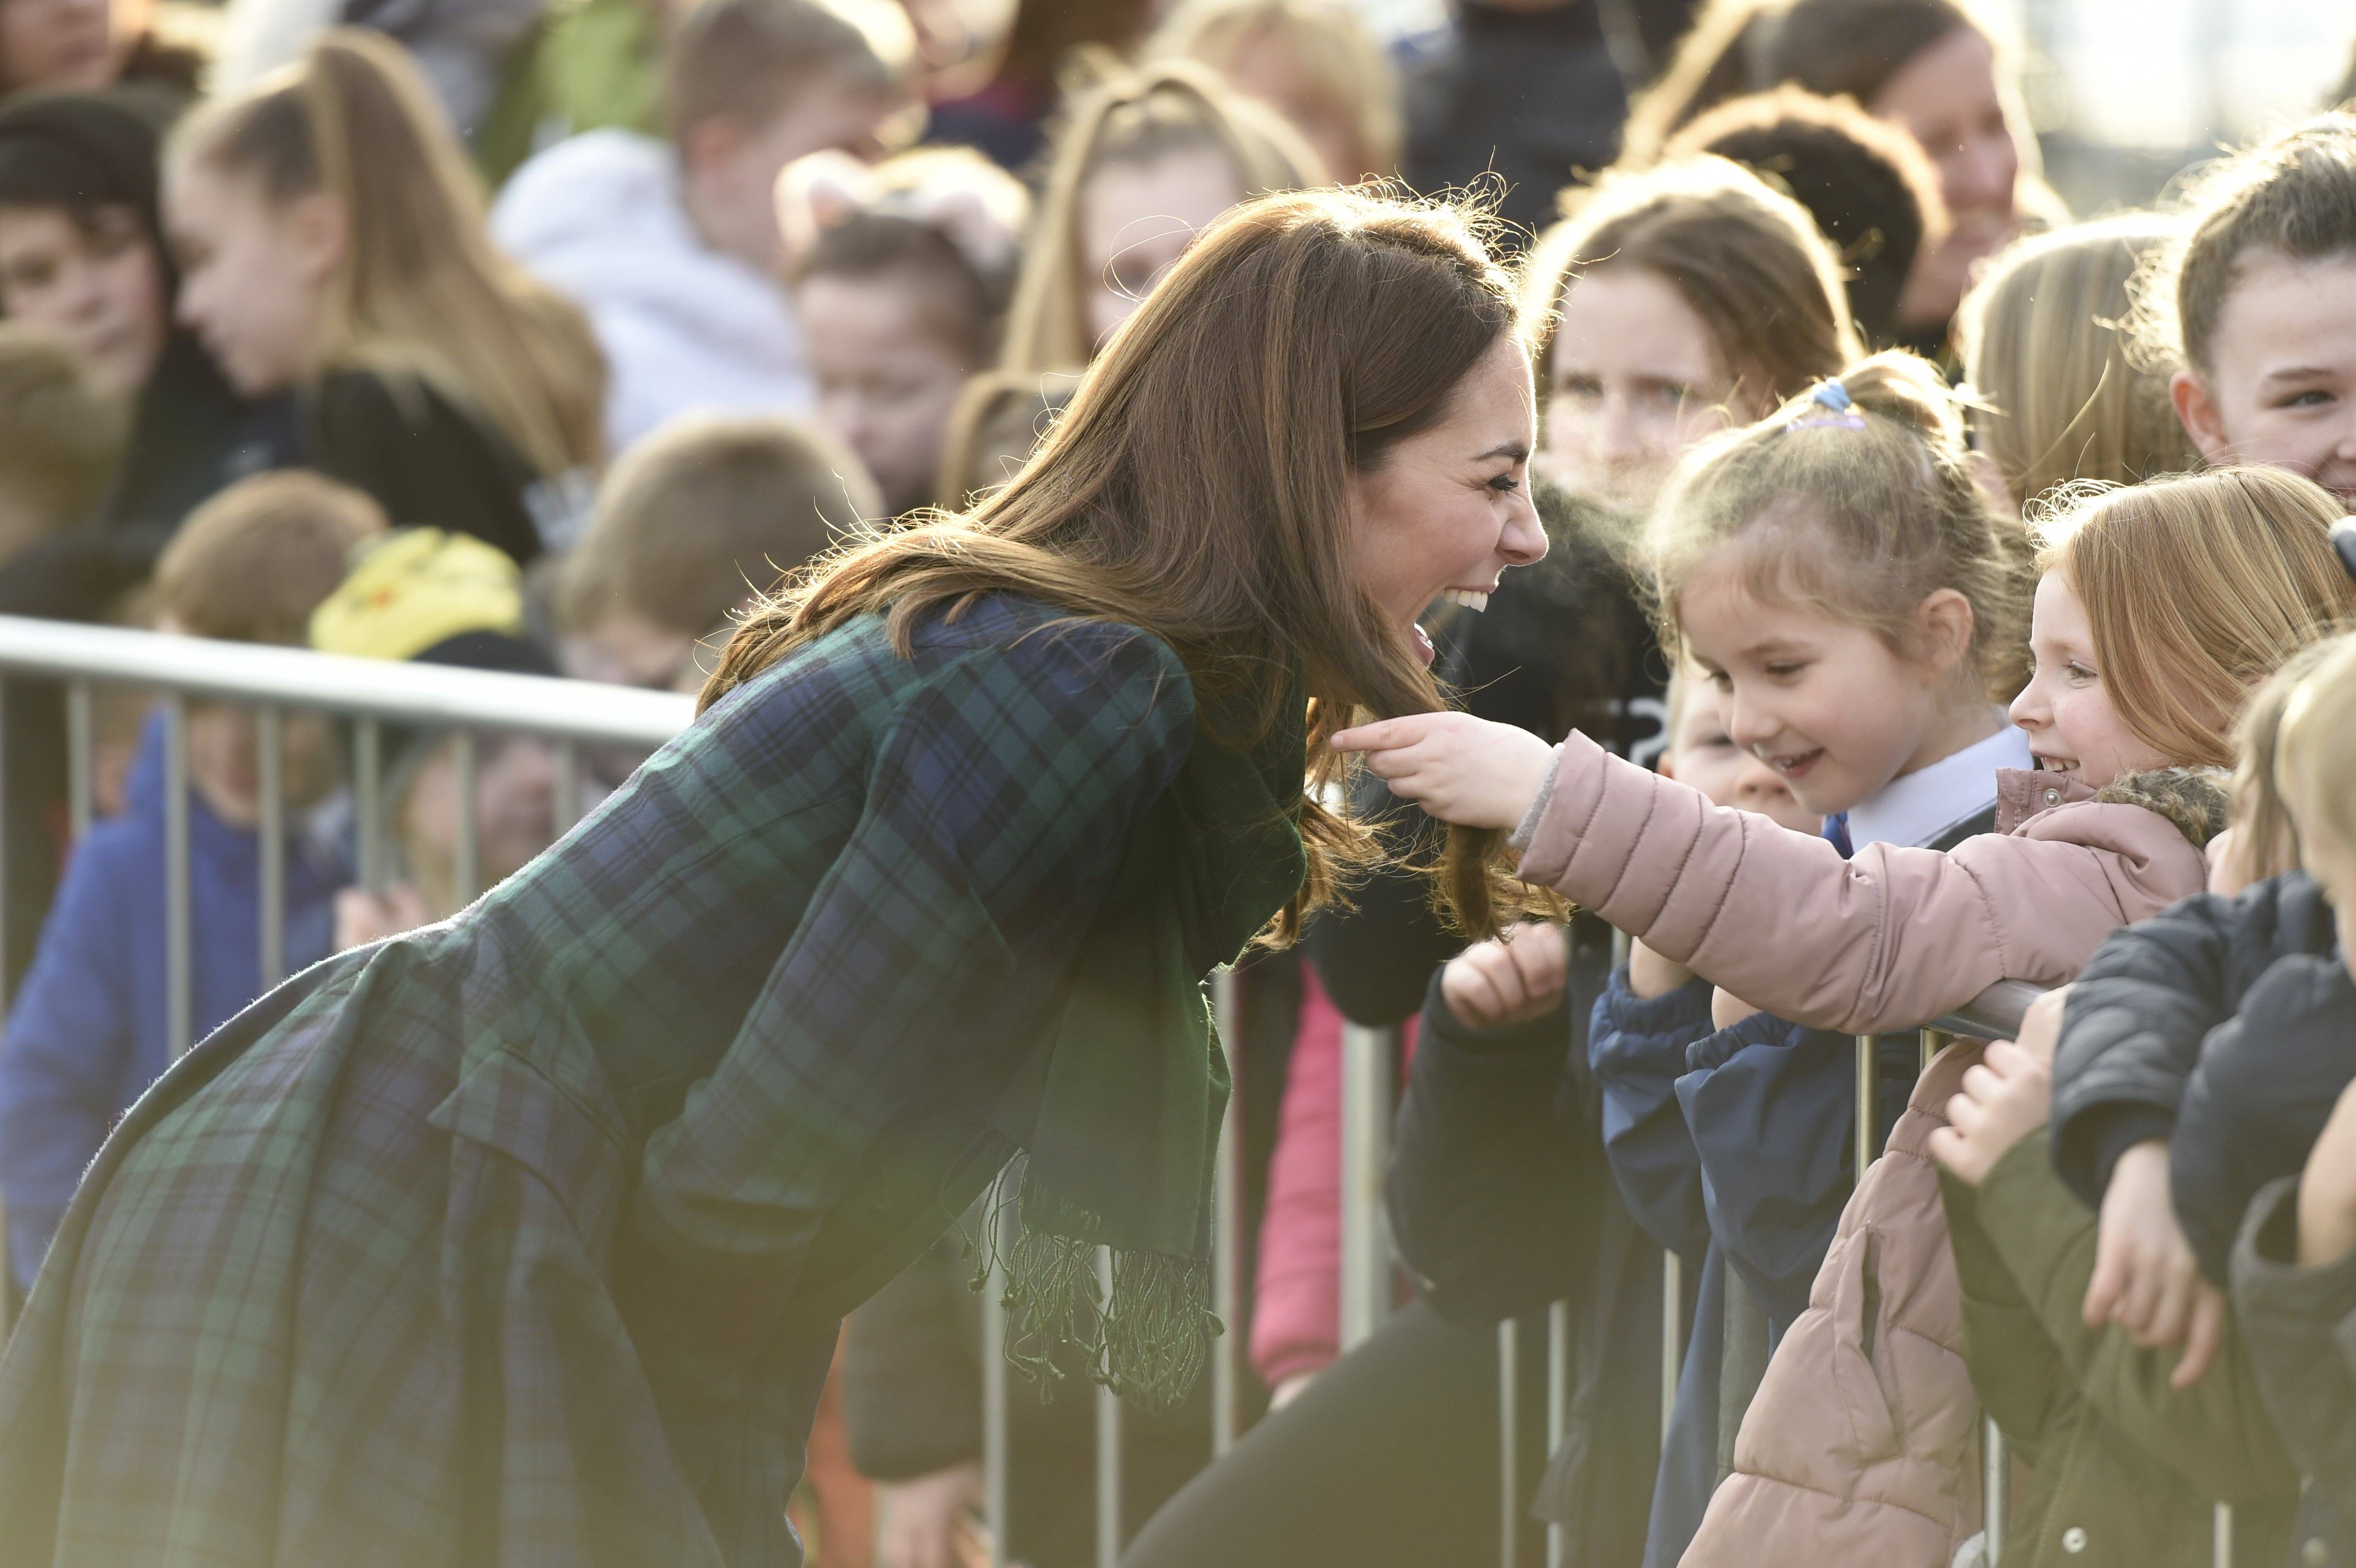 Kate Middleton lors du rassemblement à Dundee l Source: Getty Images